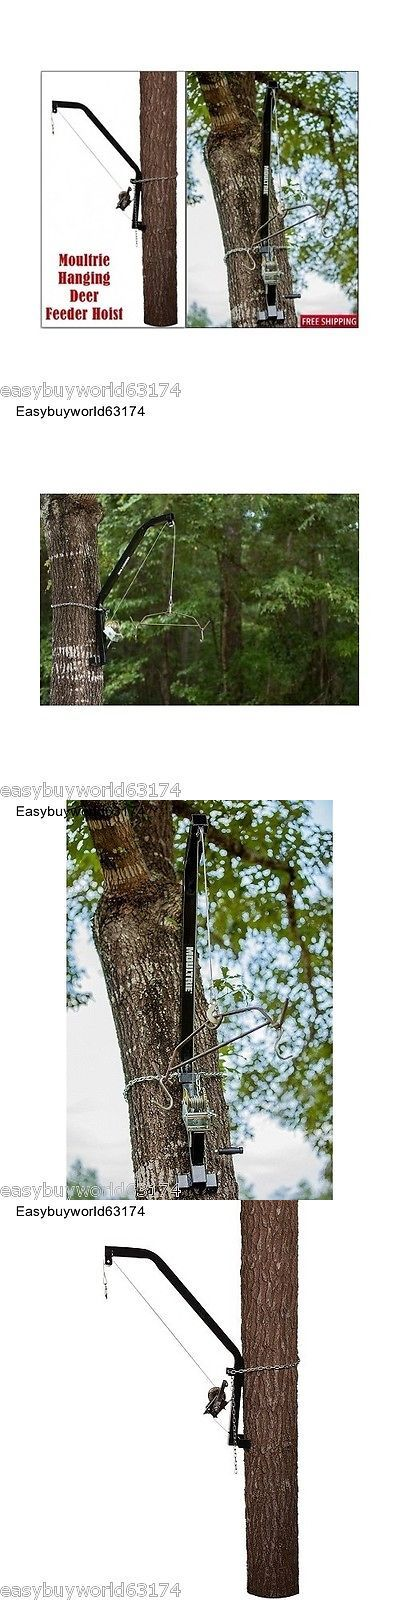 Game Feeders and Feed 52504: Moultrie Hanging Deer Feeder Hoist Heavy Loads Feeders,Big Game BUY IT NOW ONLY: $125.99